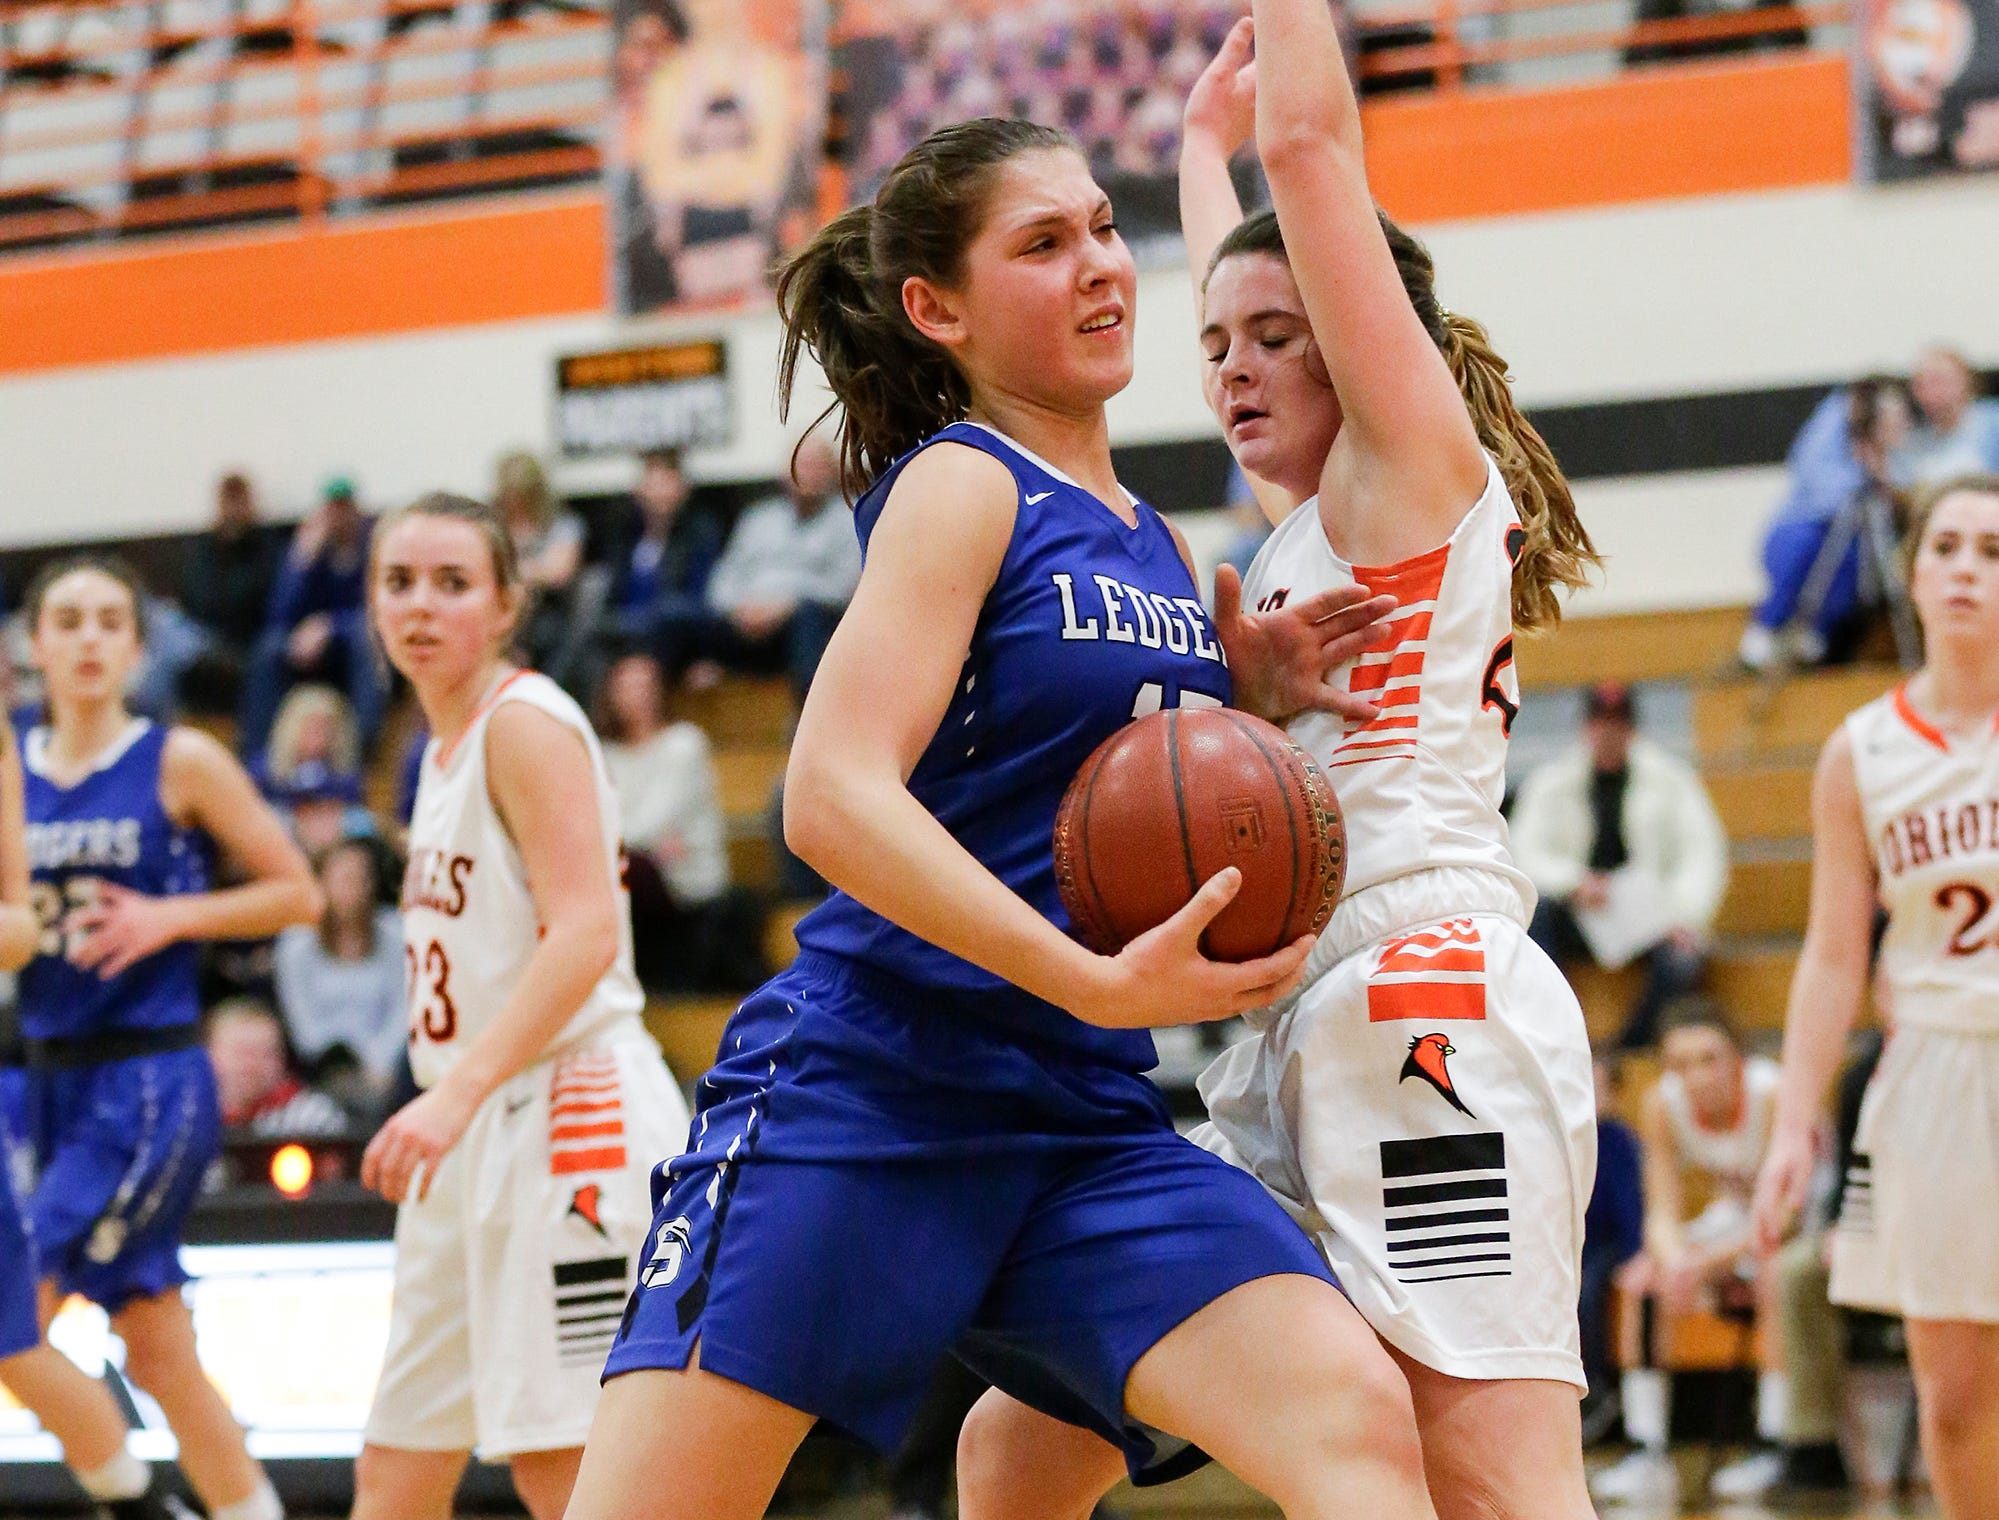 St. Mary's Springs Academy girls basketball's Maddie Gehring fouls North Fond du Lac High School's Lilly Sadoff during their game Friday, January 4, 2019 in North Fond du lac. Doug Raflik/USA TODAY NETWORK-Wisconsin